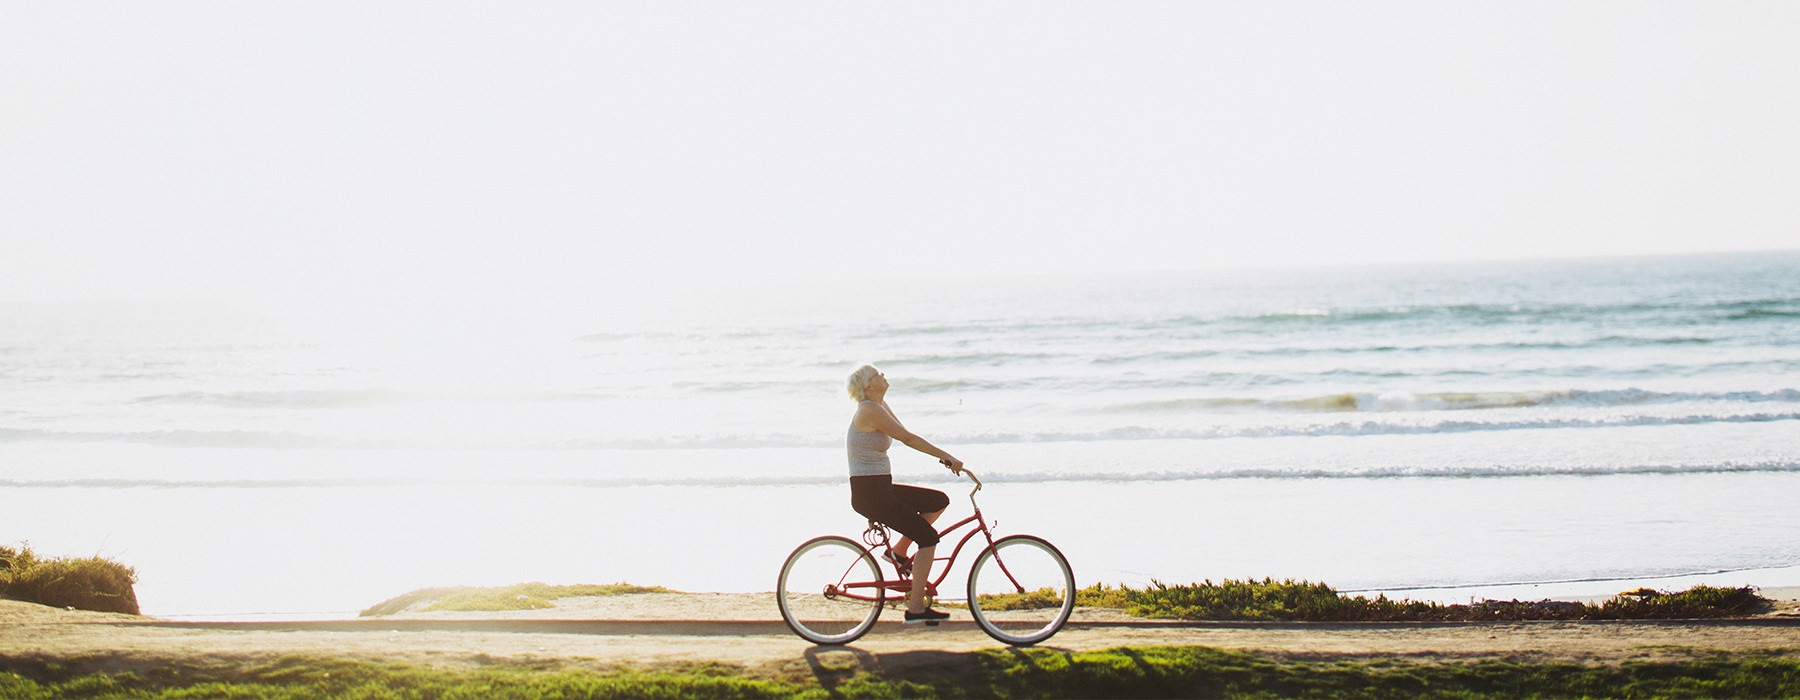 Woman riding her bike by the ocean